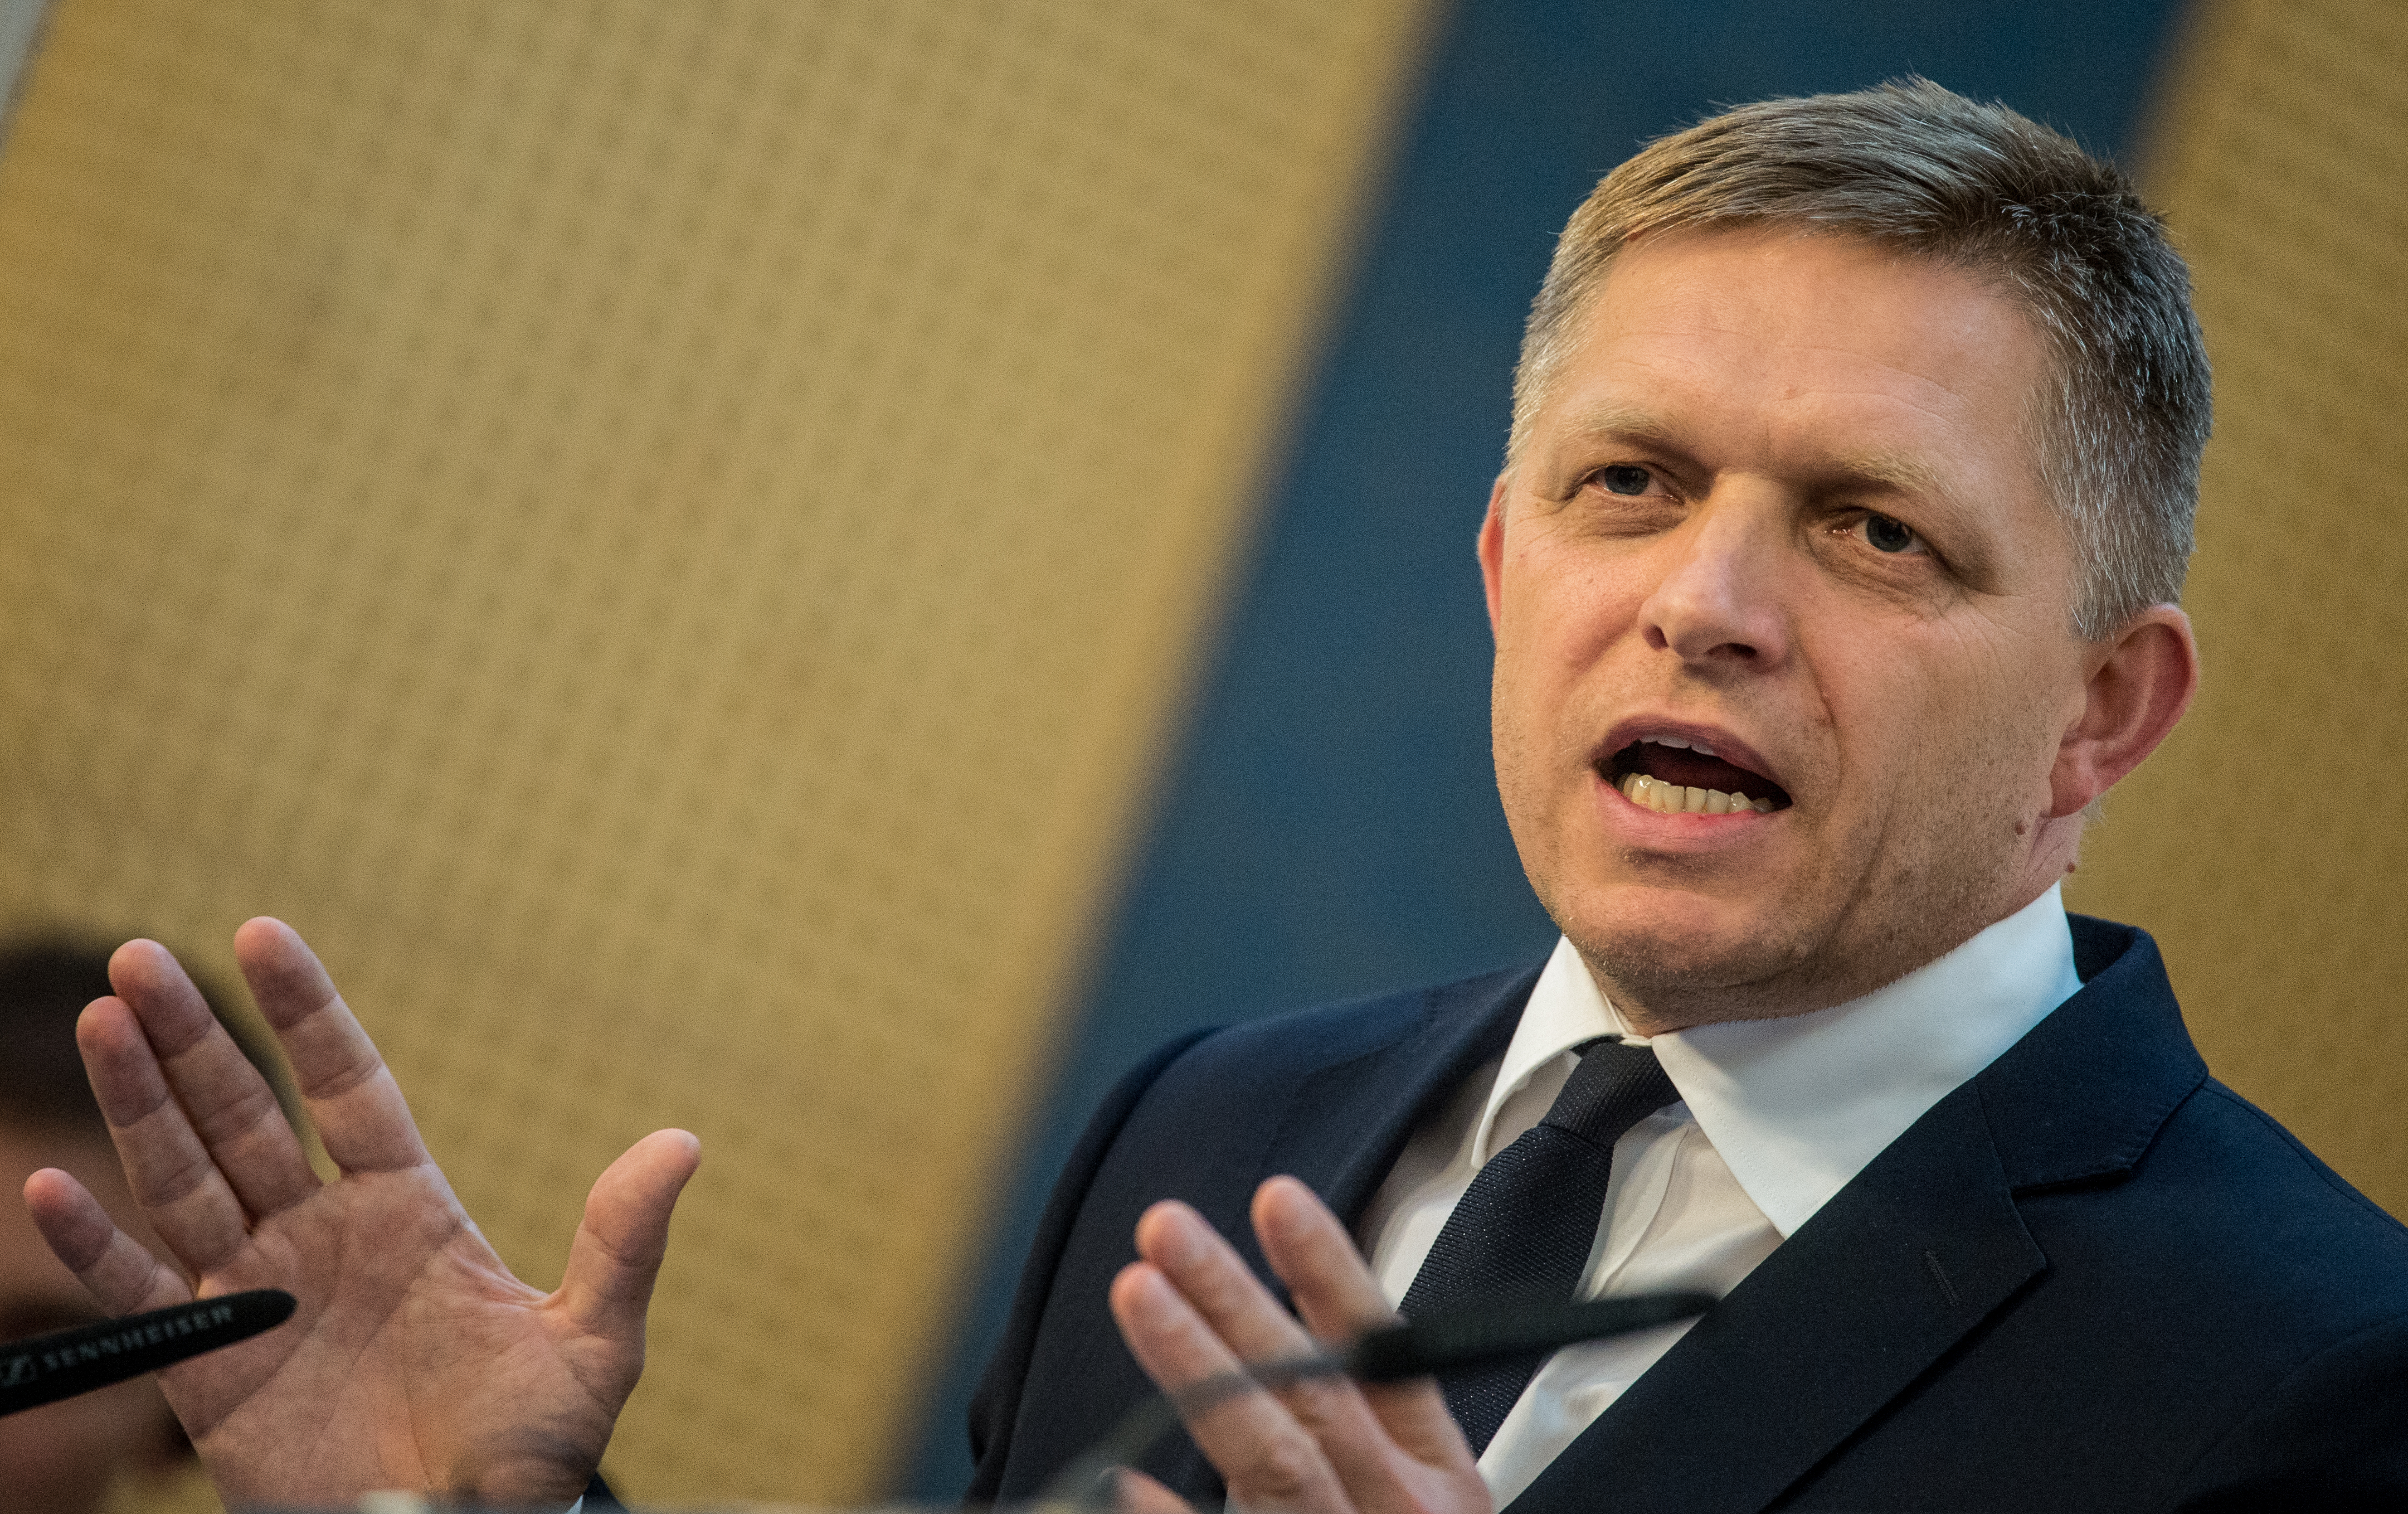 Slovakia Prime Minister Robert Fico gestures during a press conference after the Visegrad Four countries extraordinary summit in Prague, Czech Republic, 04 September 2015. The main purpose of the extraordinary summit of V4 countries is to issue a joint declaration on the course of action V4 countries will take with regard to the current migration crisis in Europe.